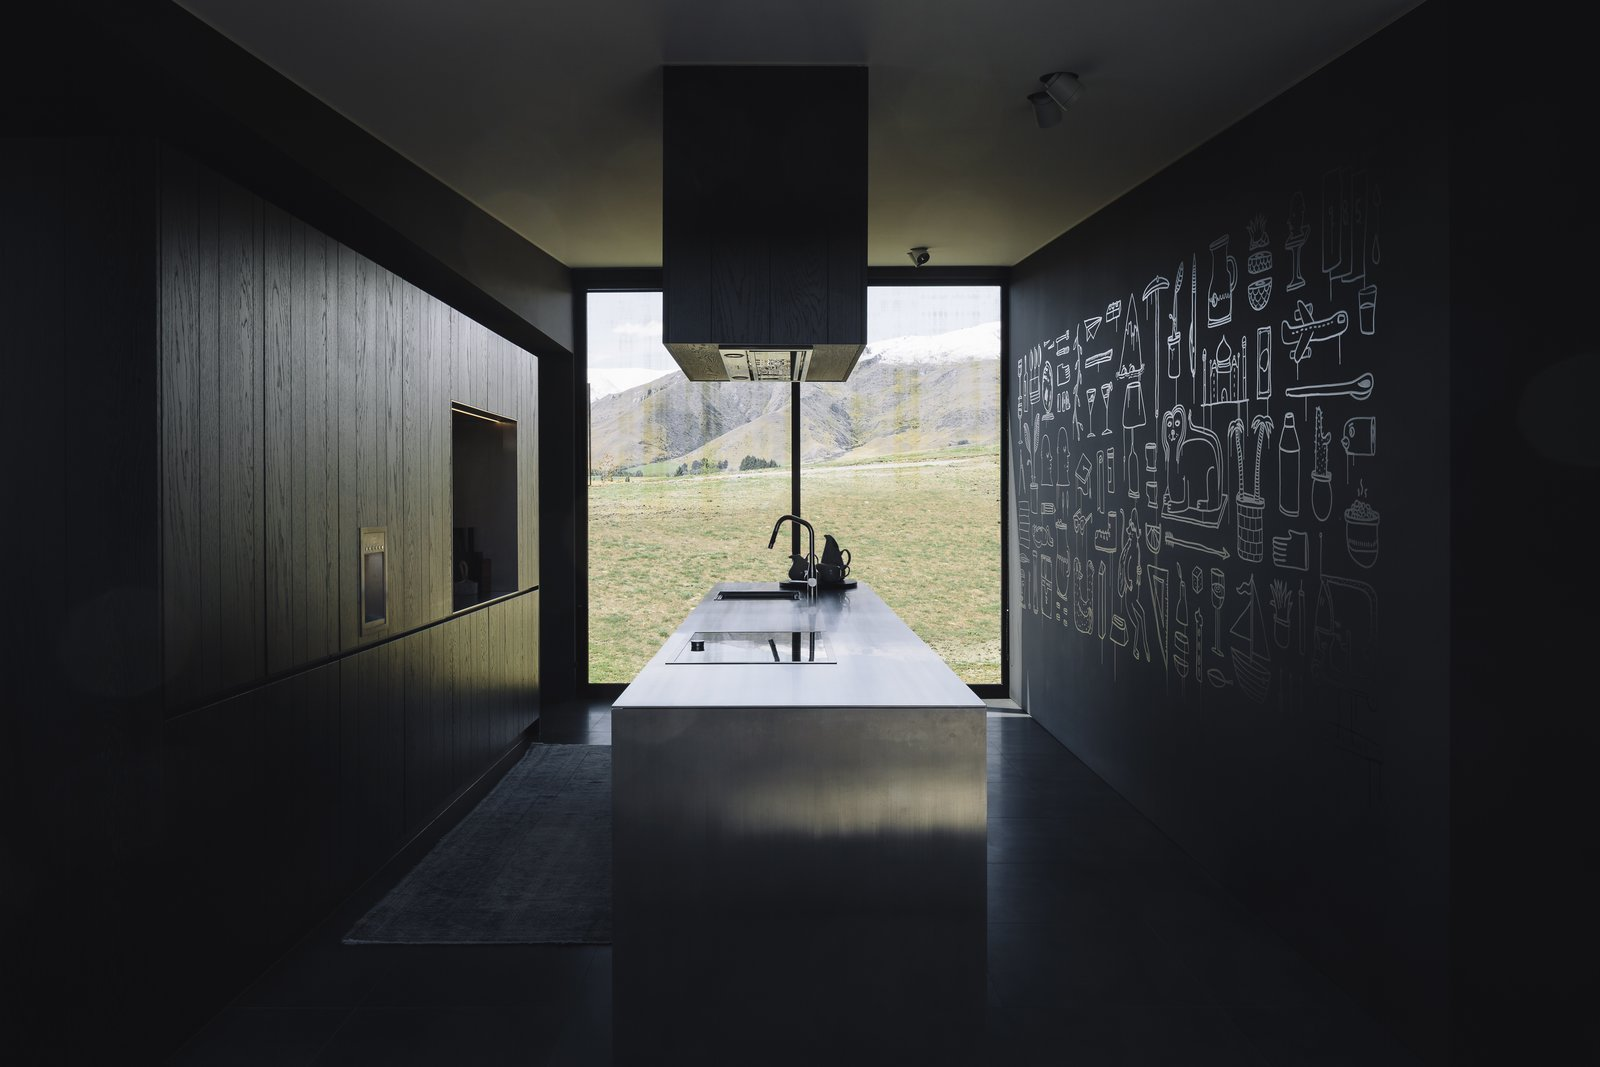 Kitchen, Range Hood, Wall Oven, Cooktops, Undermount, Refrigerator, Wood, Ceiling, Ceramic Tile, and Wood Floor to ceiling glass frames the view in the kitchen.  Kitchen Cooktops Undermount Ceramic Tile Photos from A Striking Black House Appears to Float in the New Zealand Mountains